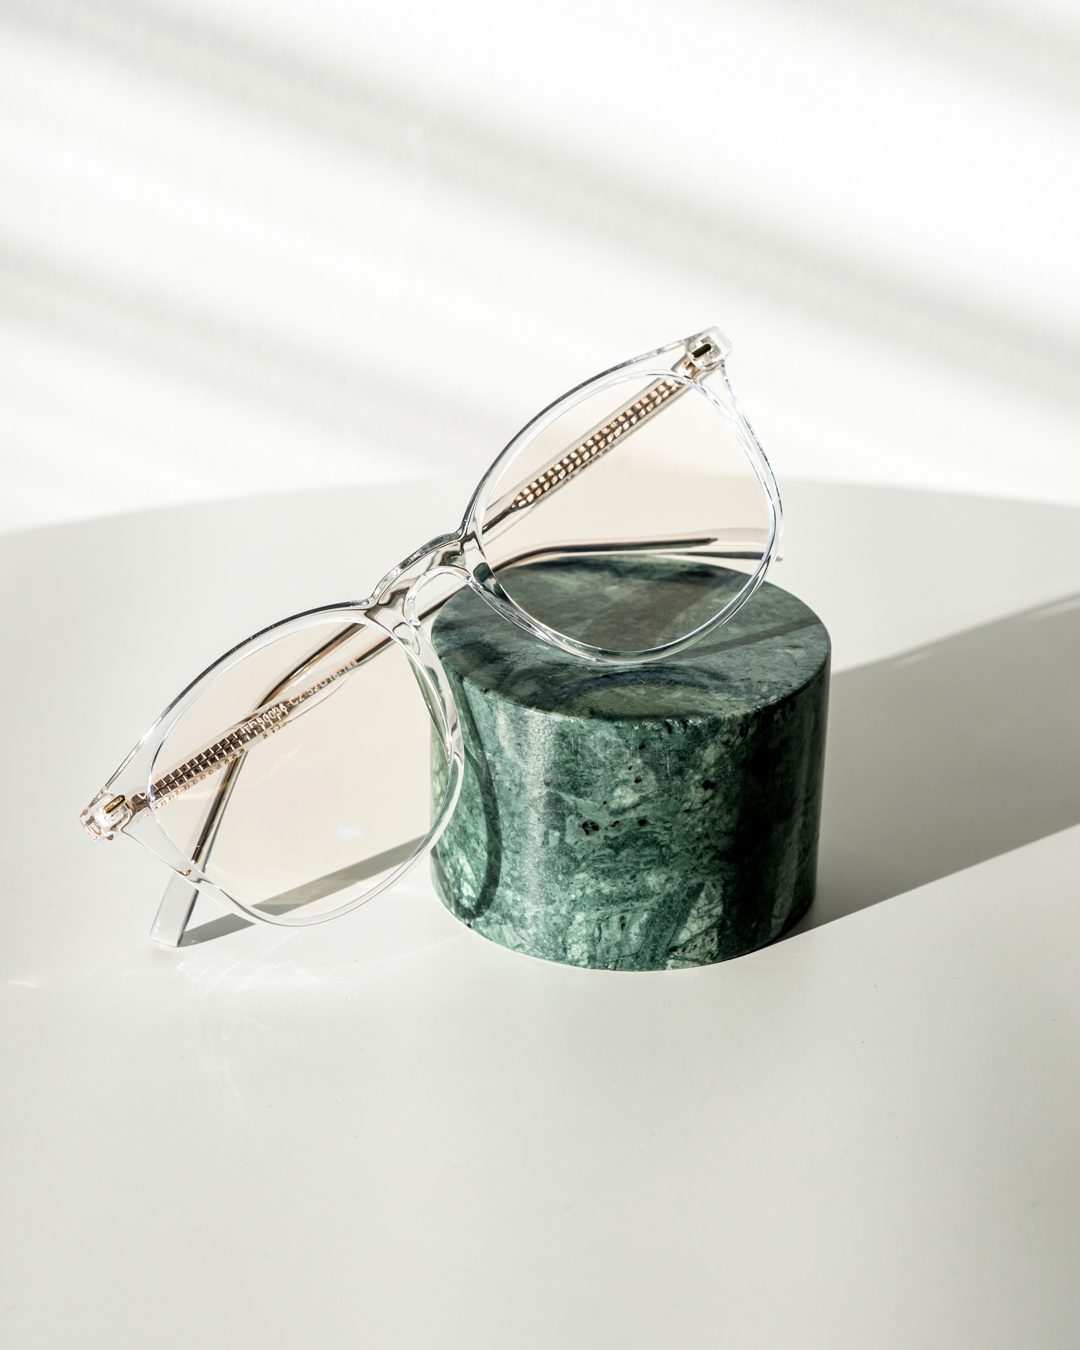 Clear framed glasses fitted with anti-blue light lenses and gold-toned metal detailing propped up against a green marble circle.